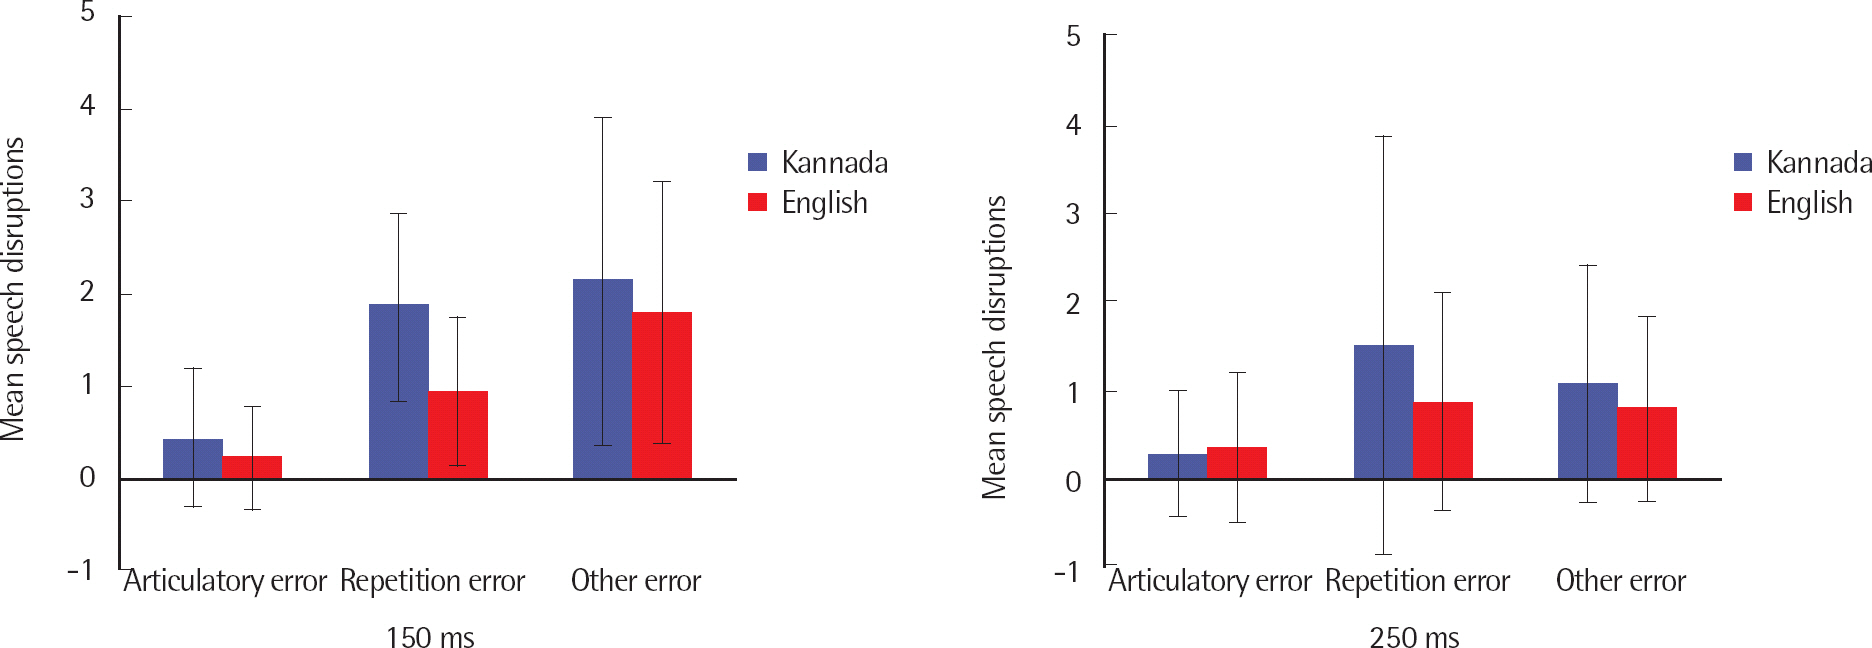 Language Familiarity Hypothesis and Delayed Auditory Feedback: A